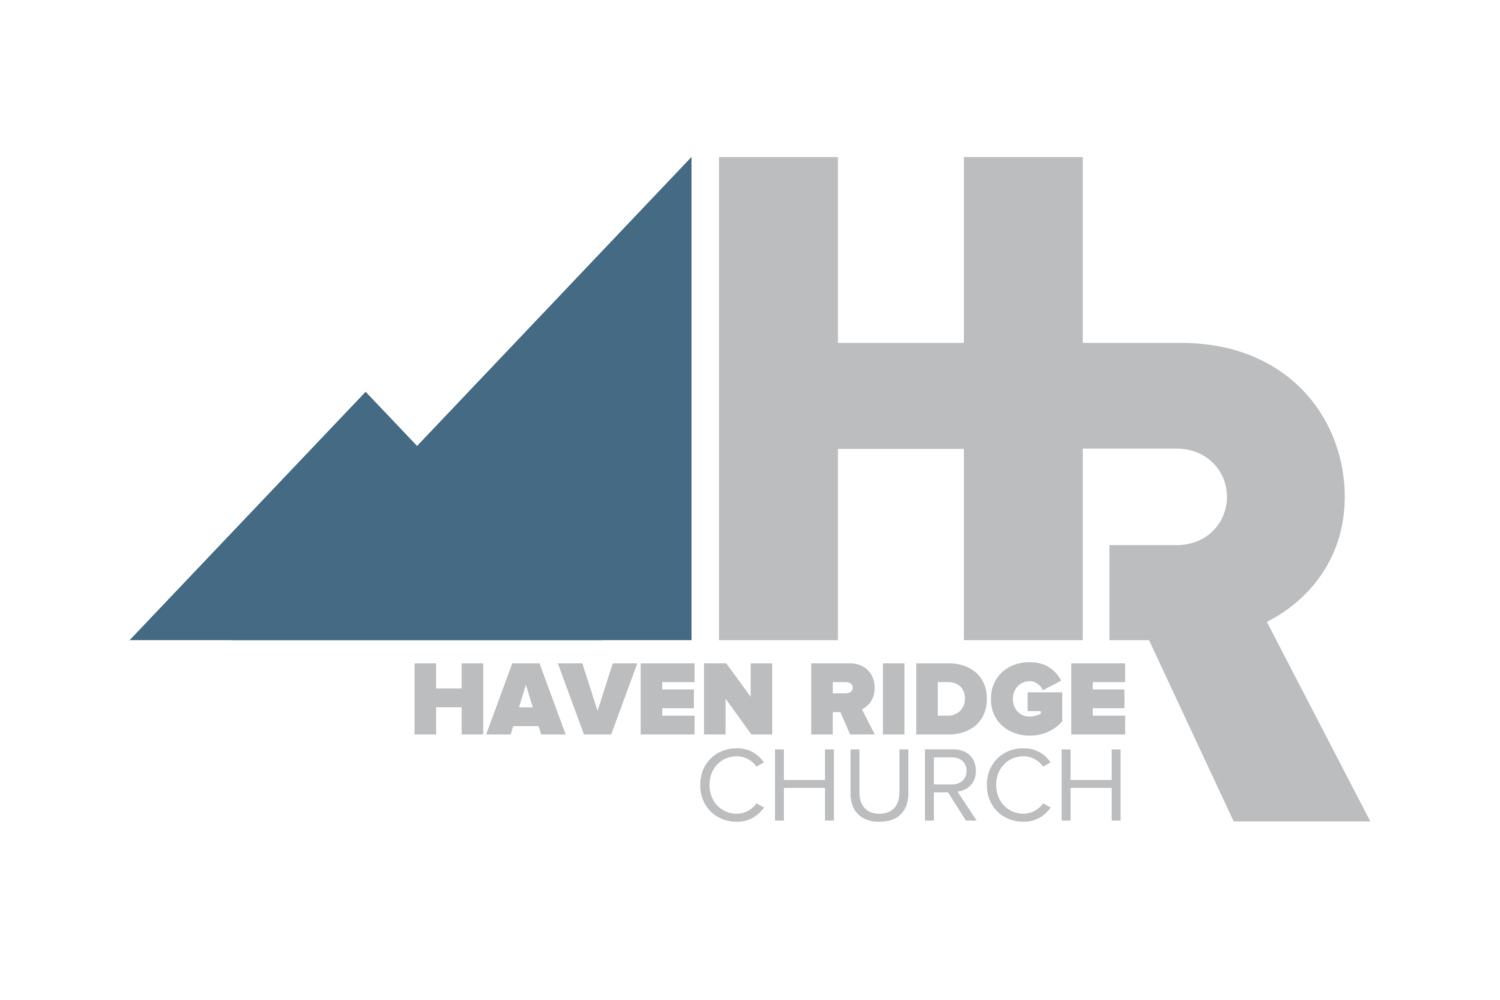 Haven Ridge Church